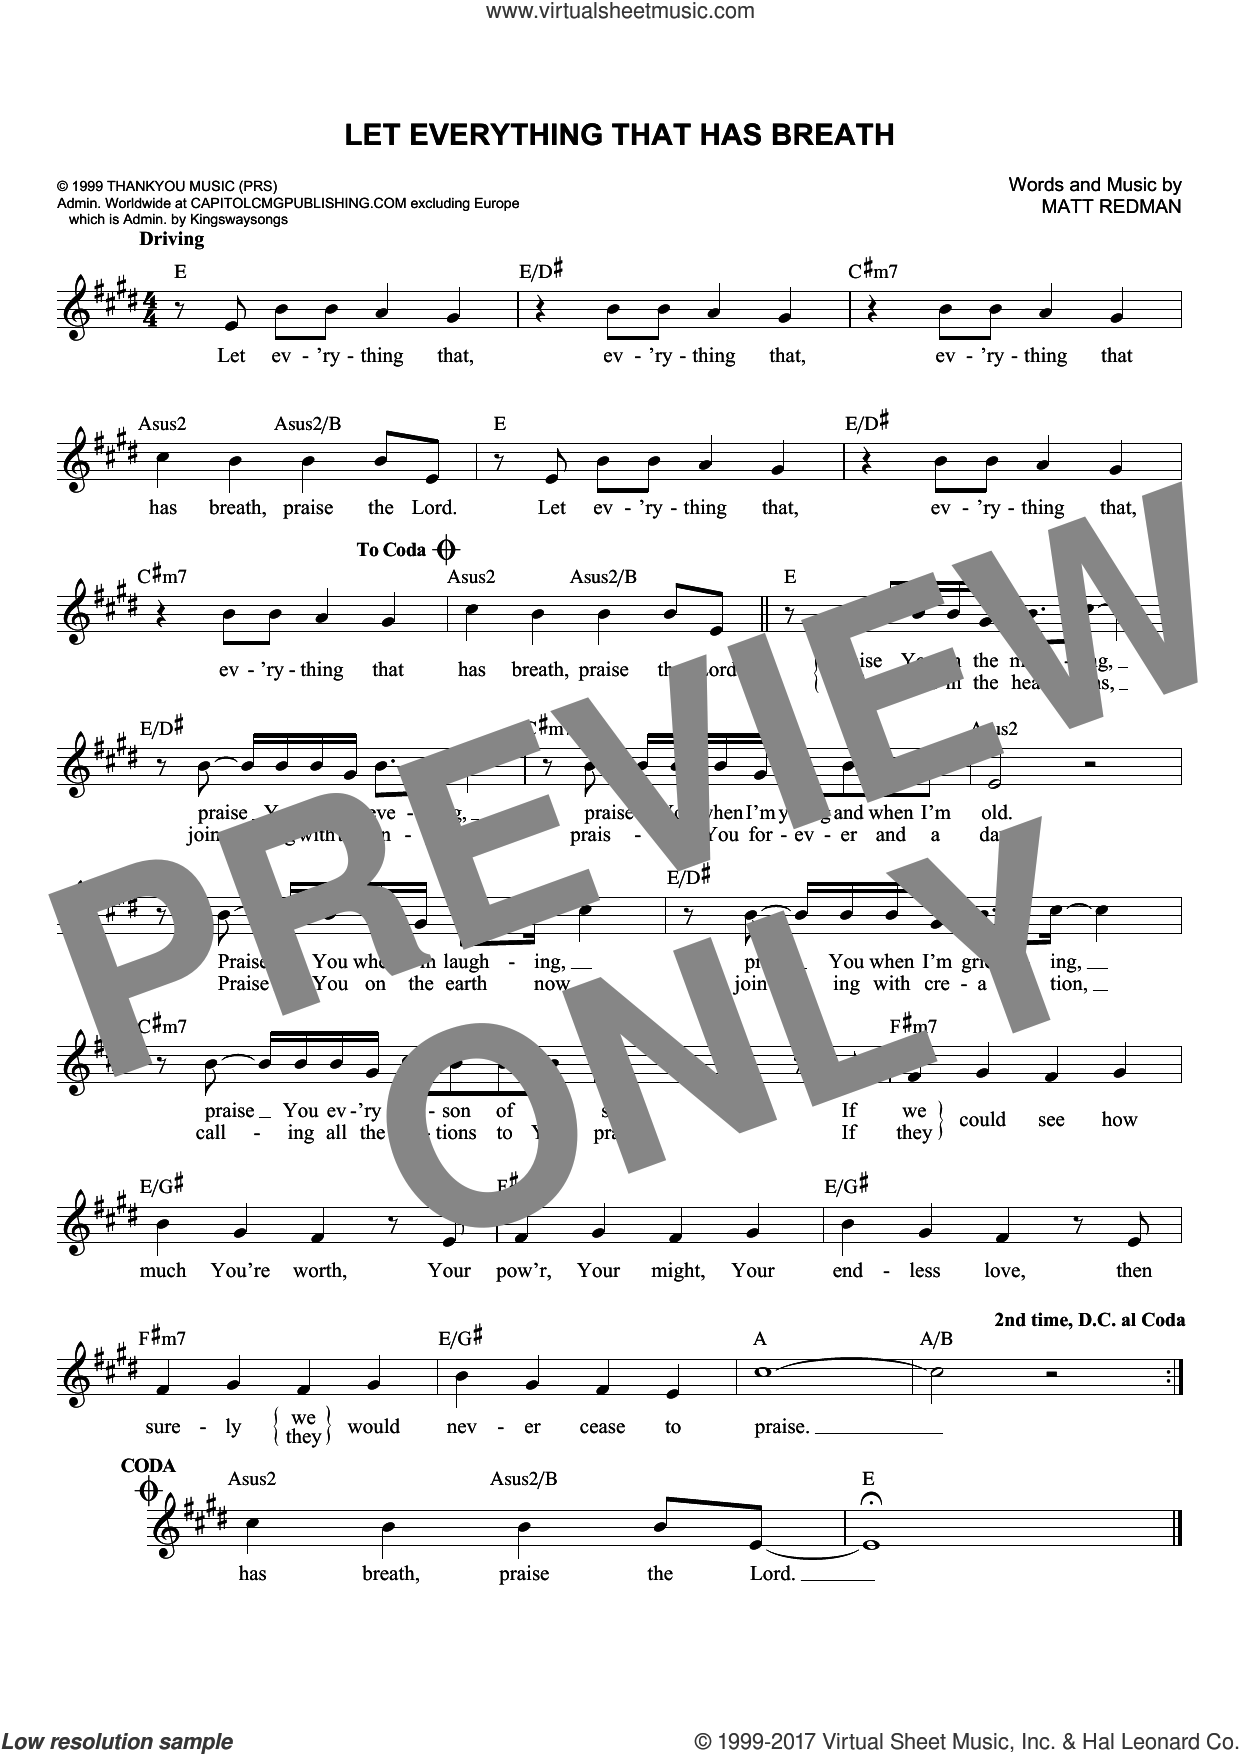 Let Everything That Has Breath sheet music for voice and other instruments (fake book) by Matt Redman and Passion. Score Image Preview.